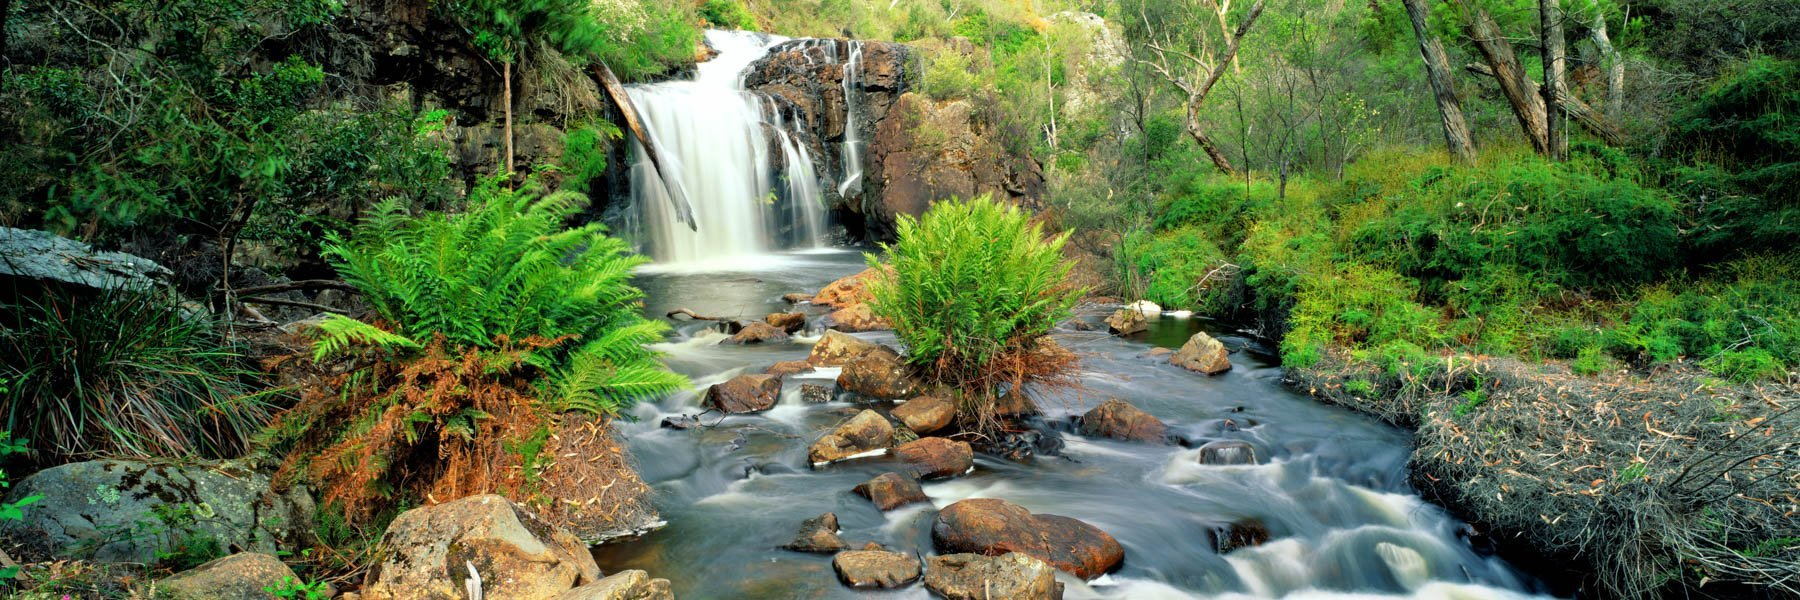 Broken Falls in the Grampians, Victoria